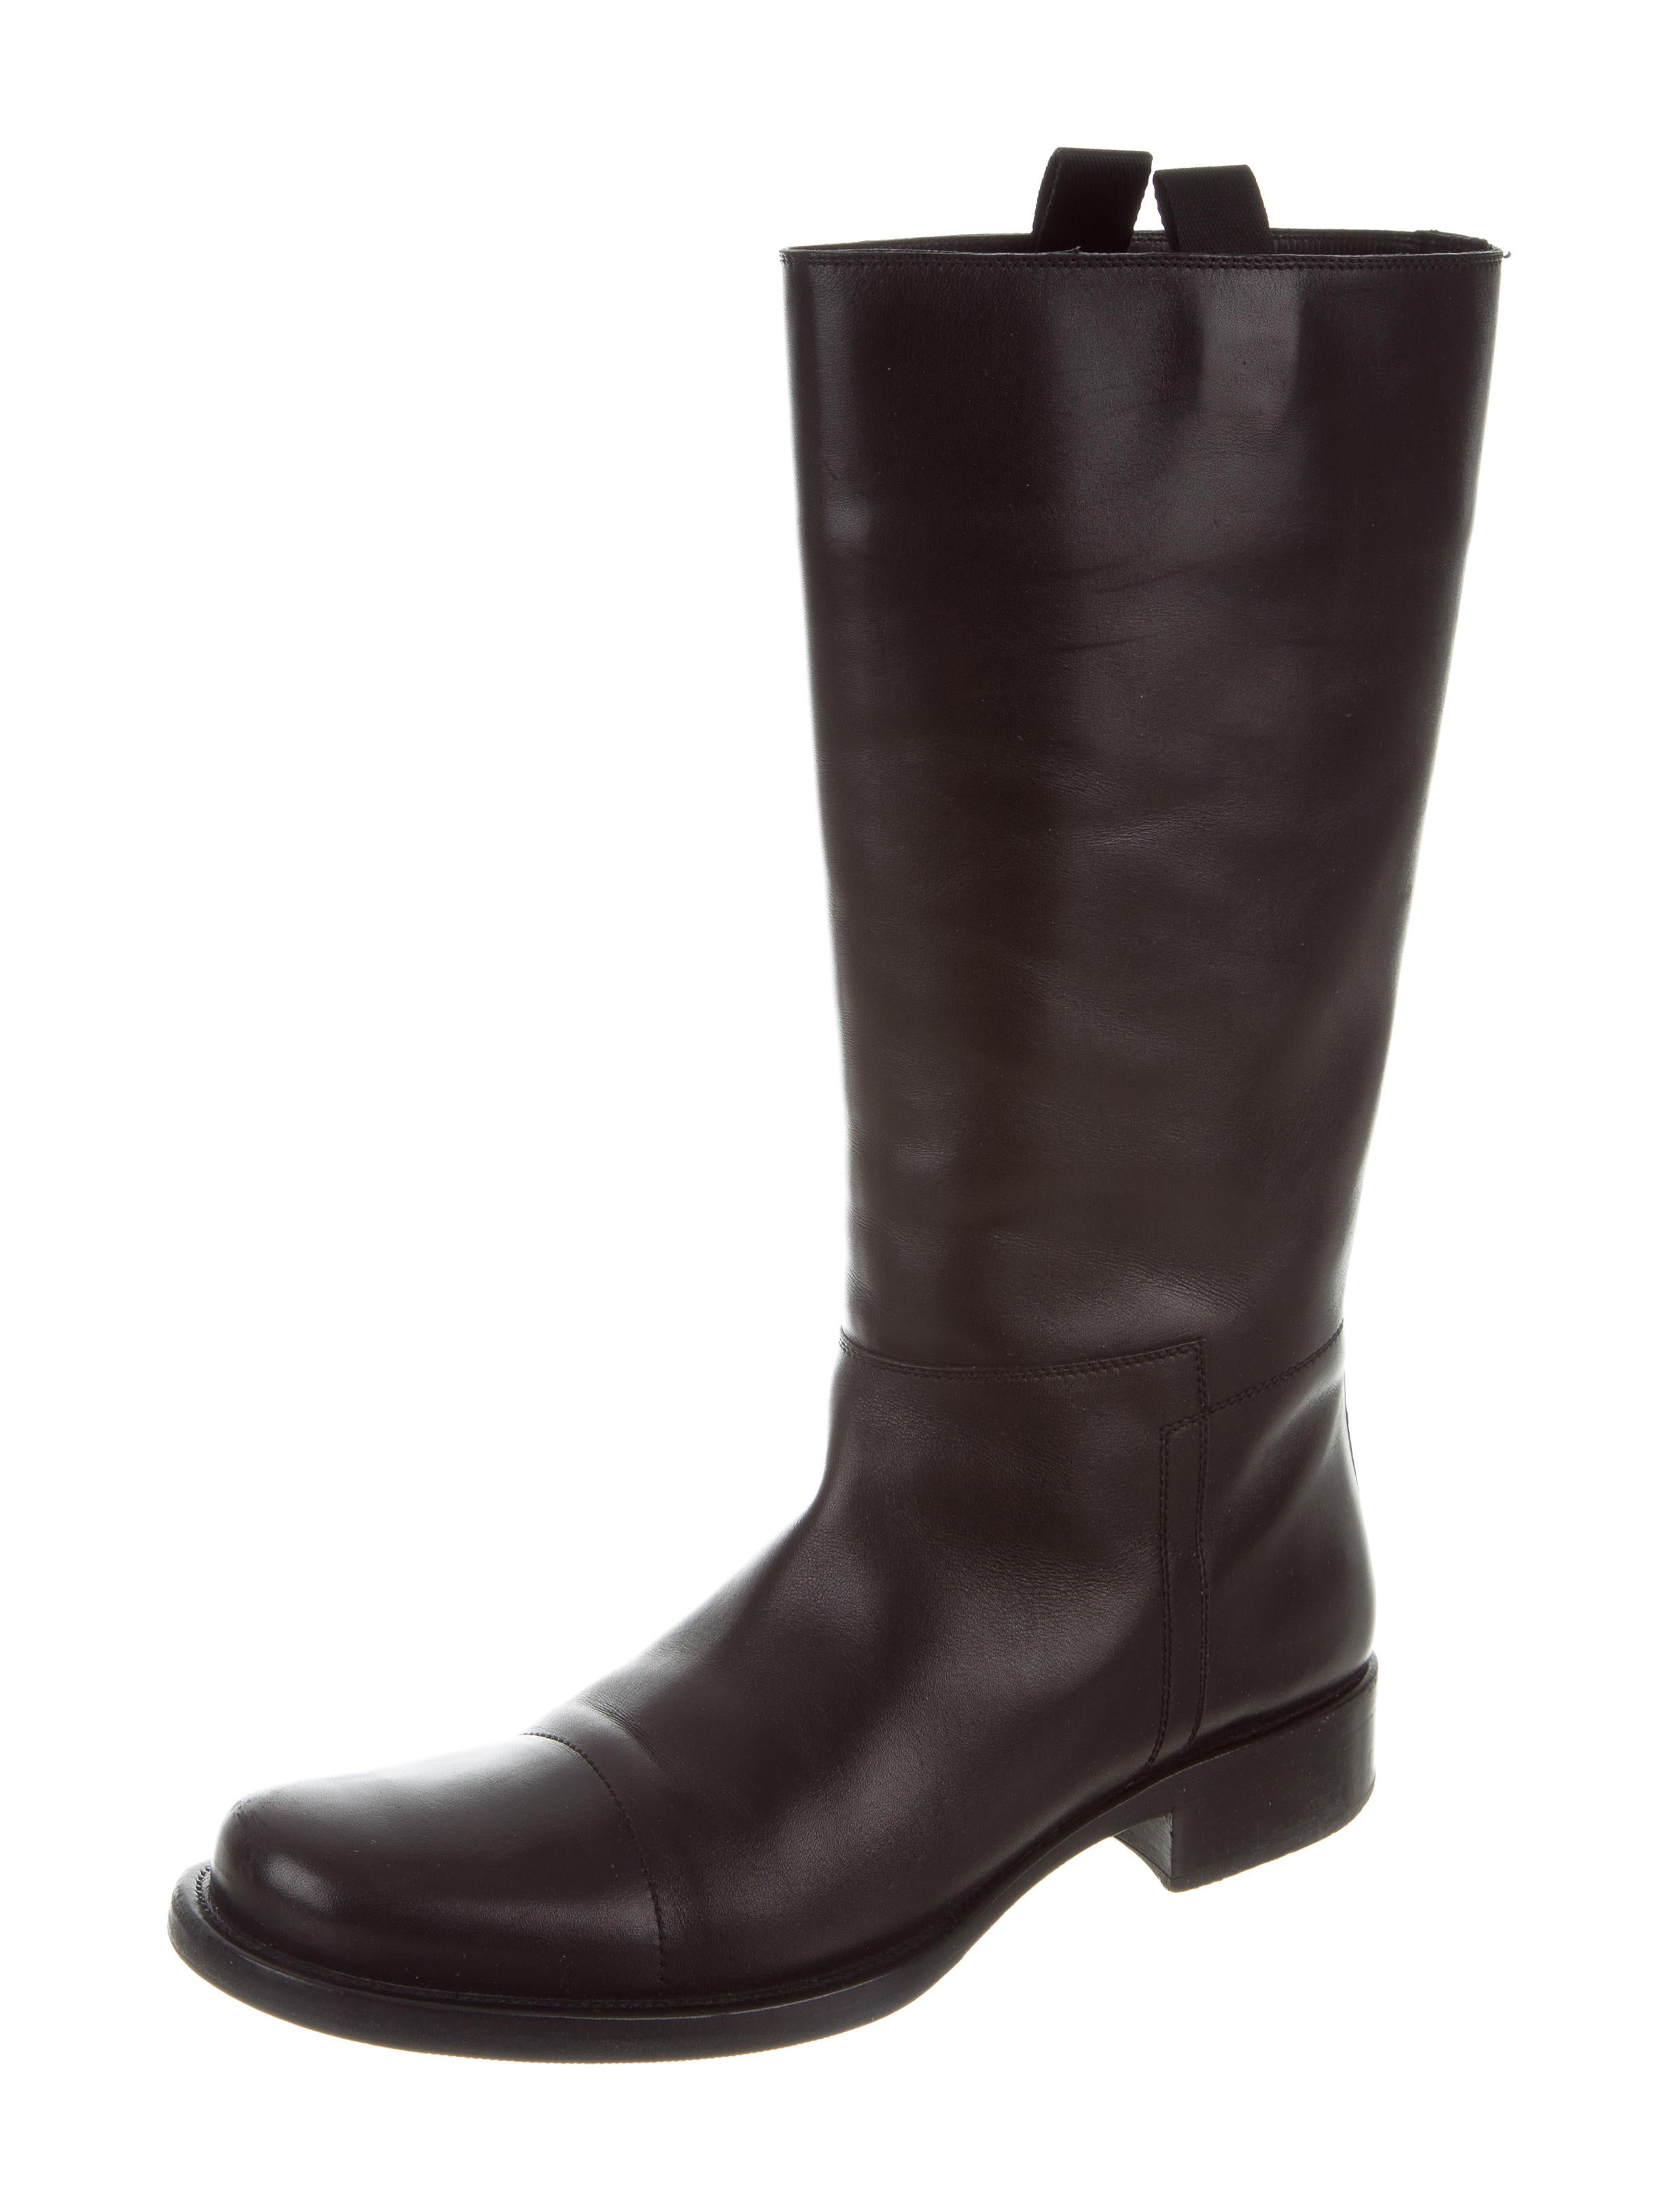 prada leather mid calf boots shoes pra156020 the